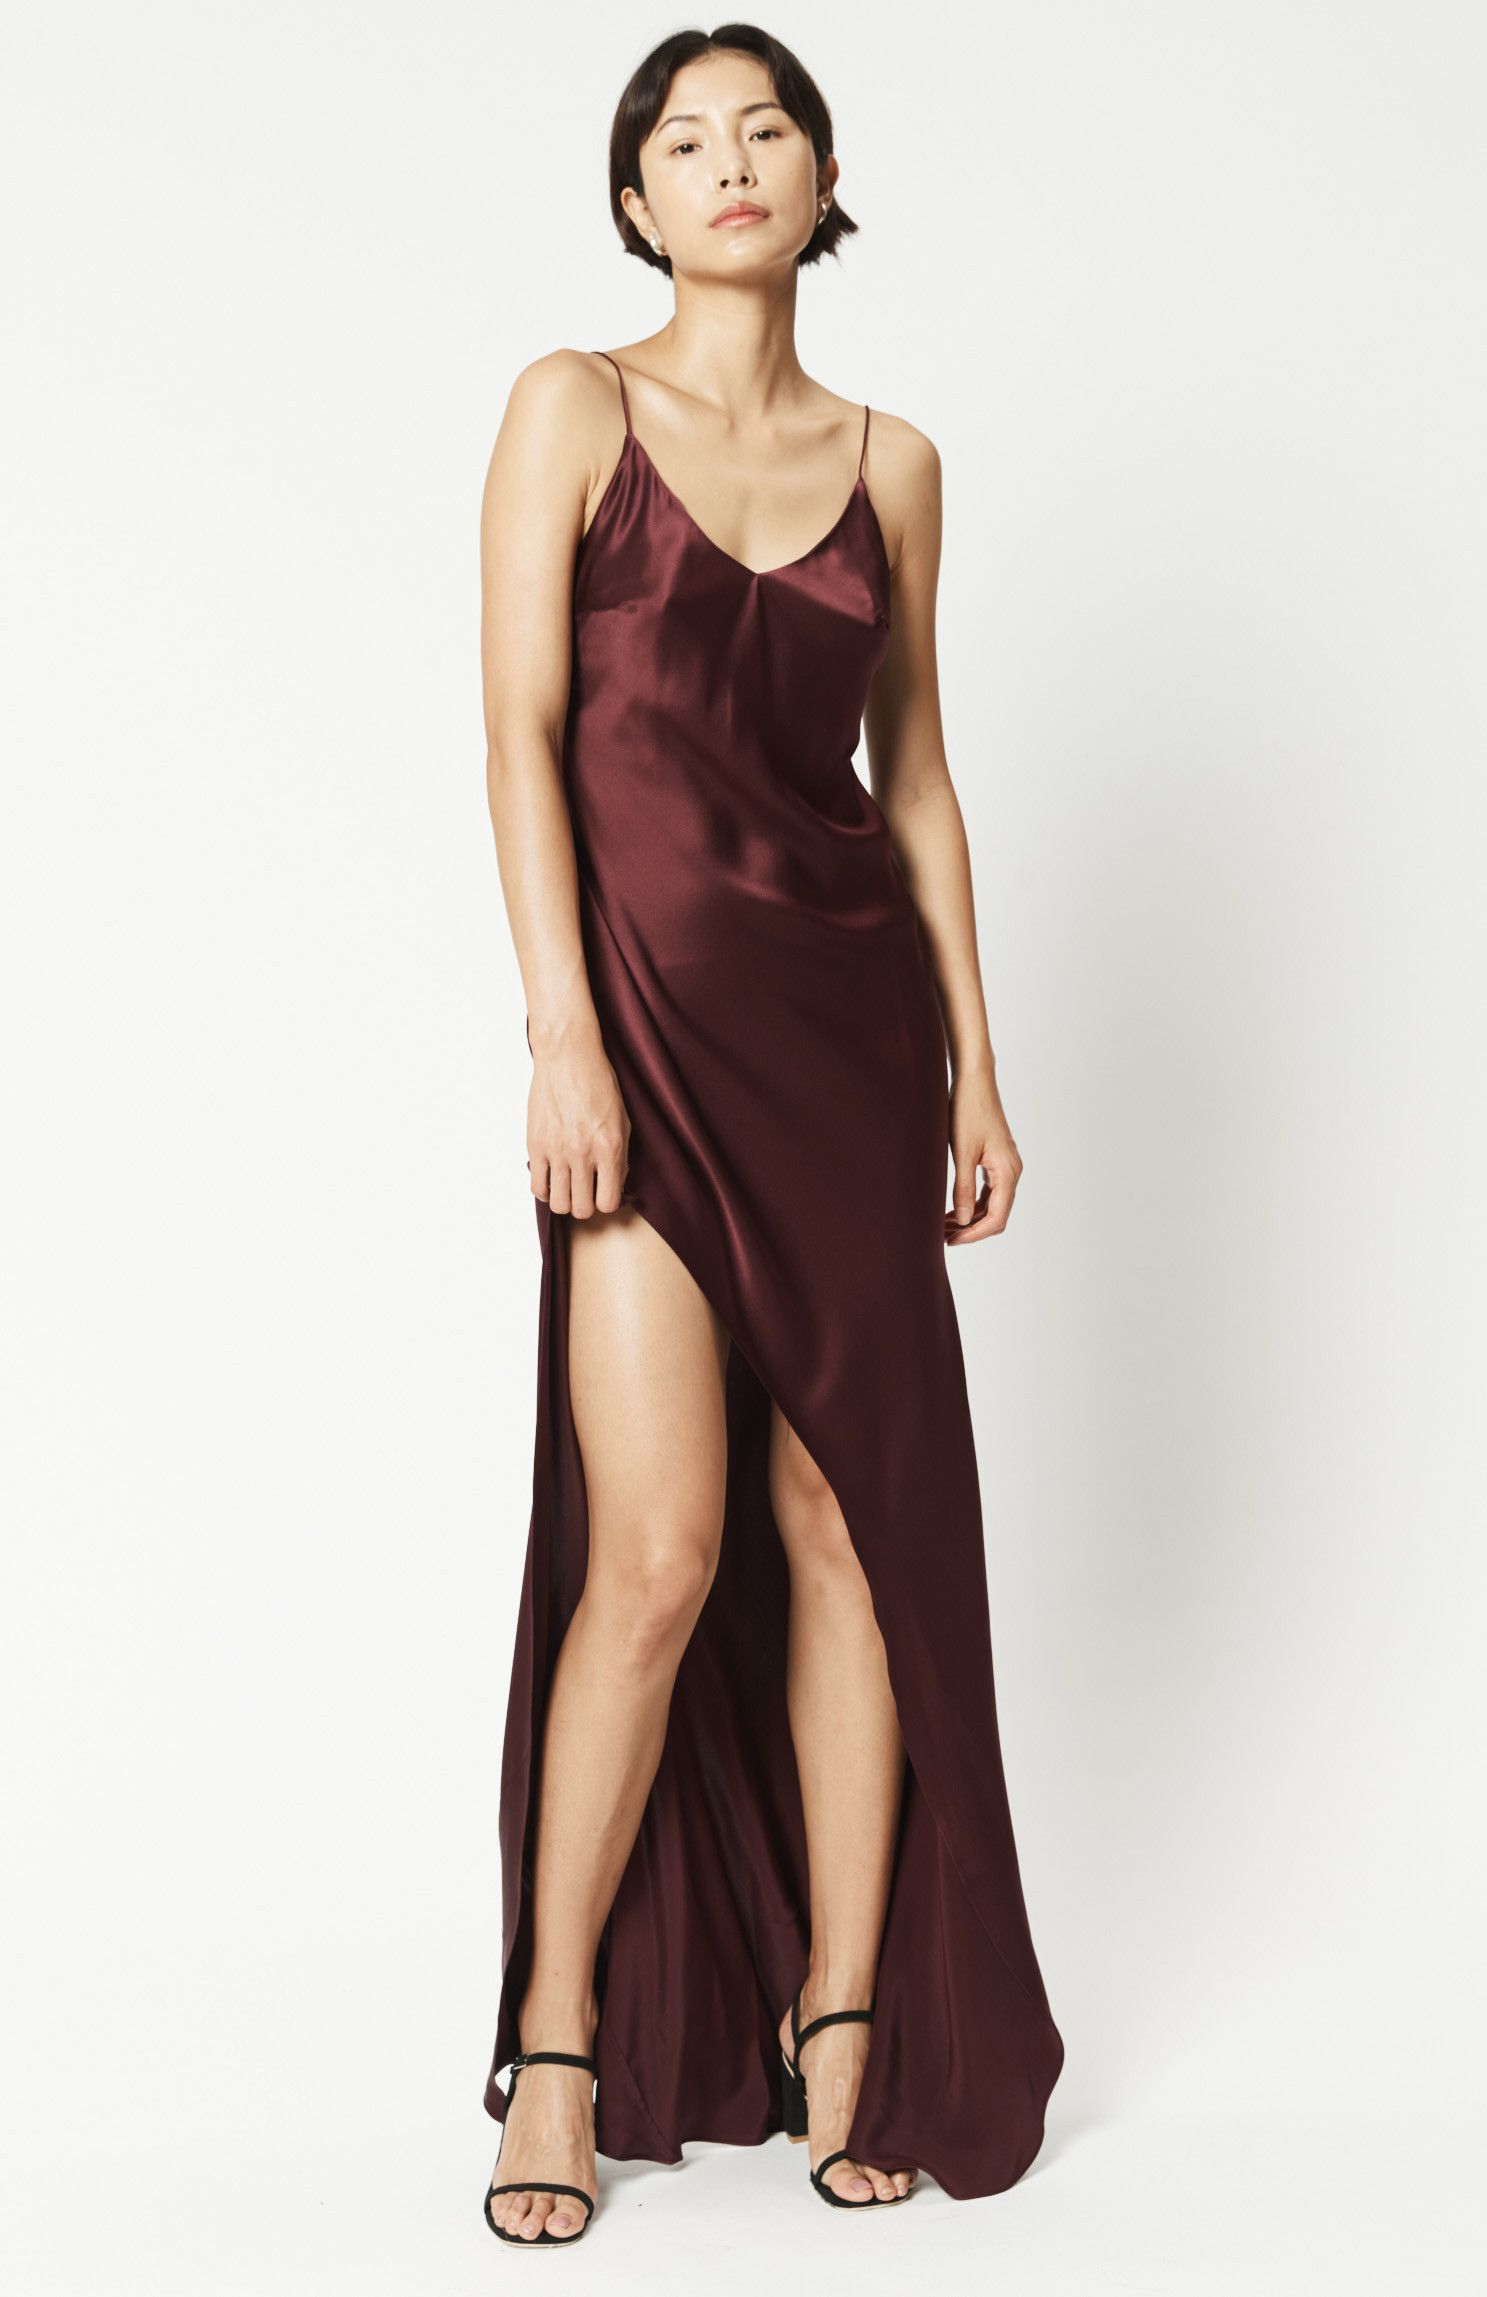 e58f08dcb2c Product Details This slip dress is an exquisite pick for evening events.  It s bias cut from lustrous